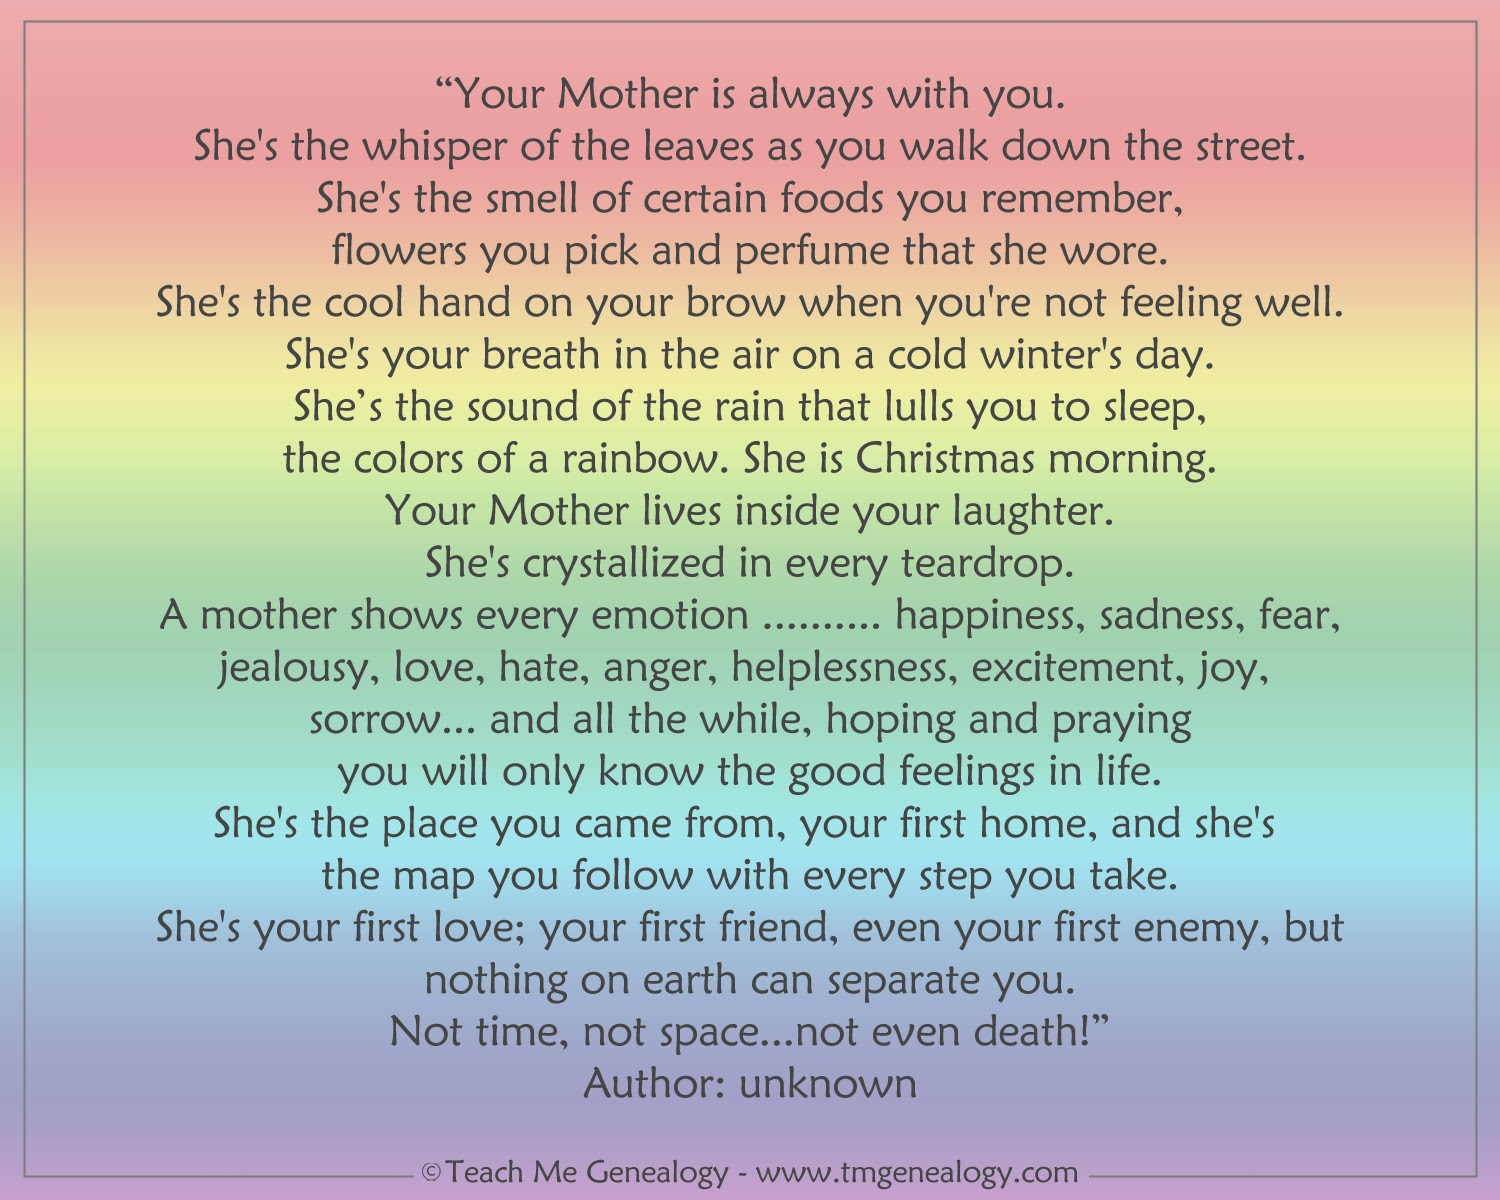 Your Mother Is Always With You Poem Teach Me Genealogy